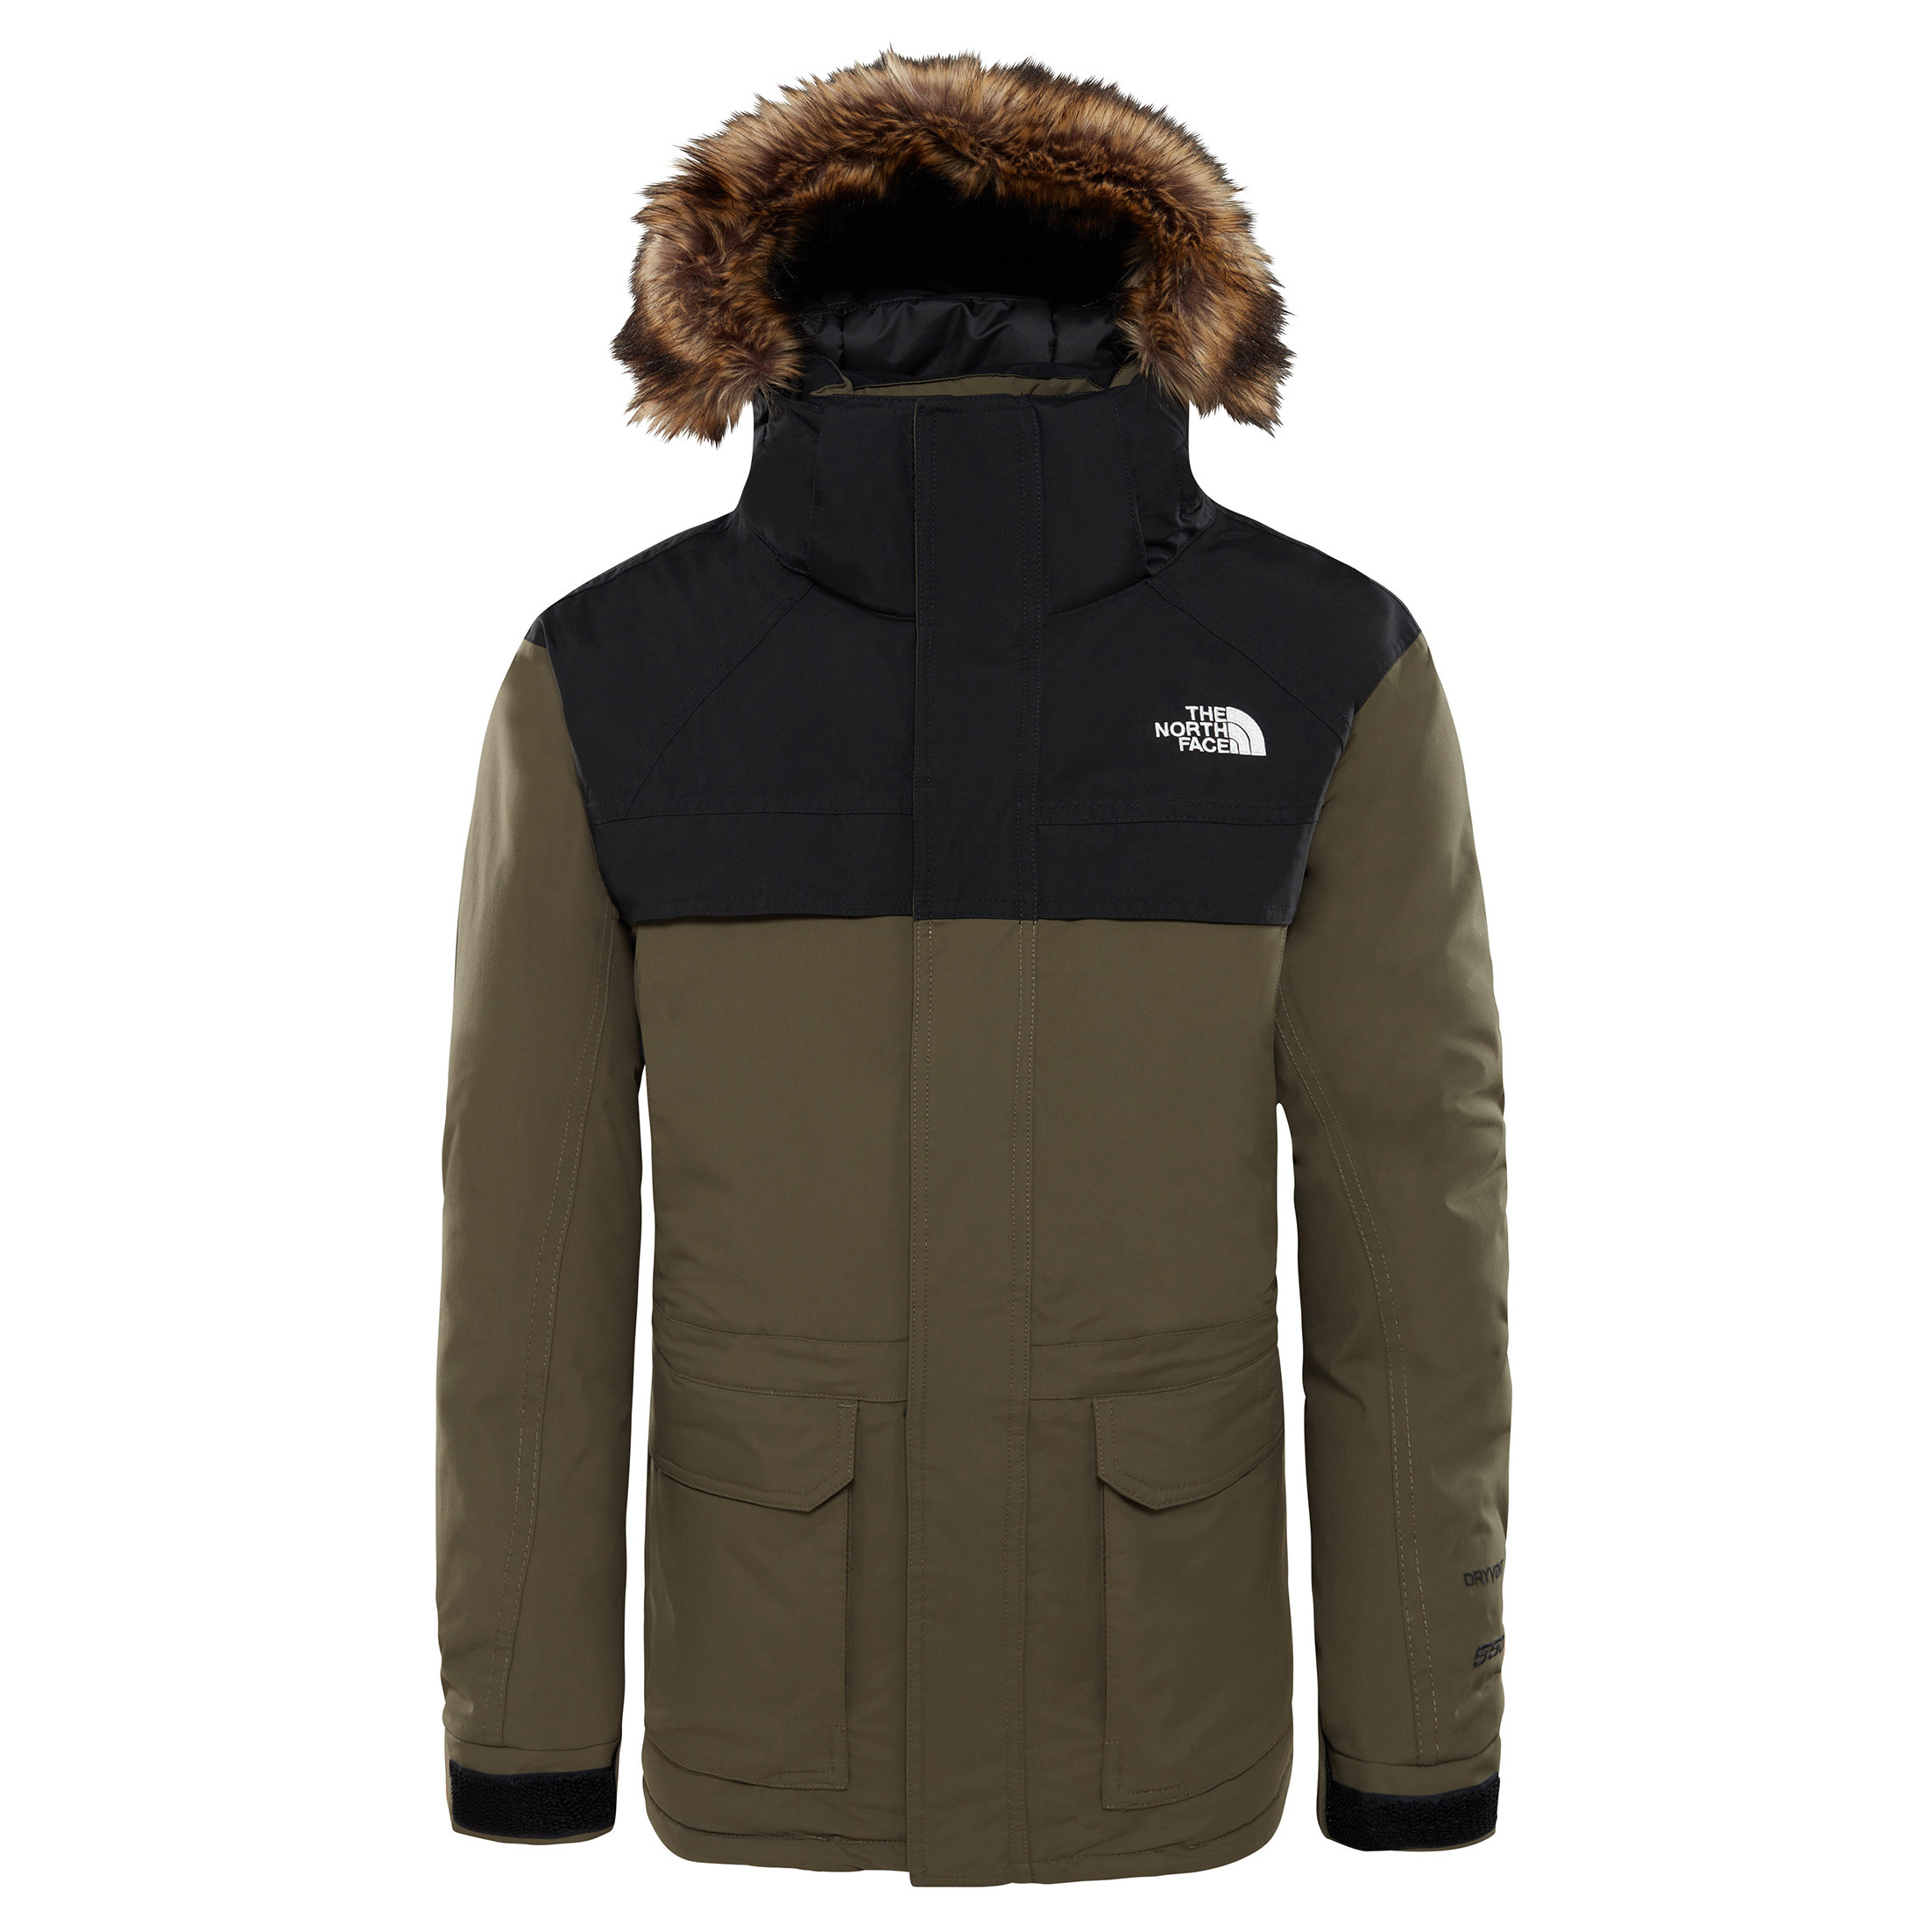 Geaca Activitati Urbane The North Face Mcmurdo Down Copii 674d734e5c78